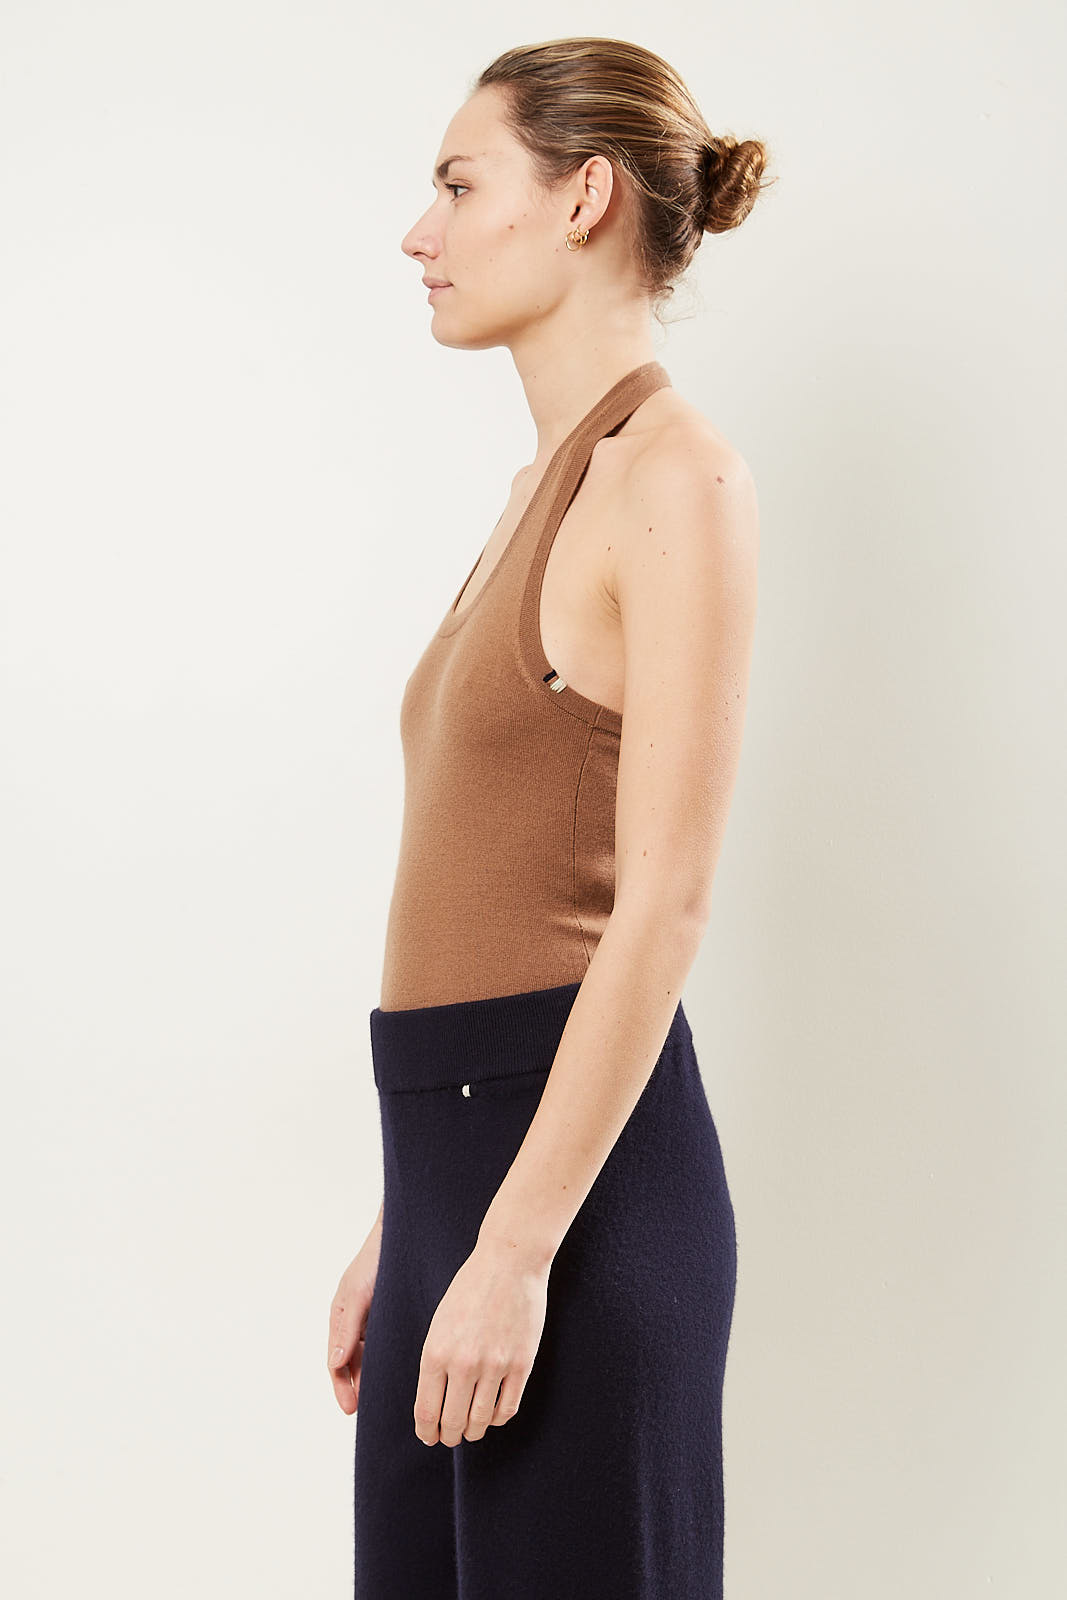 extreme cashmere - swim cashmere all in one tan